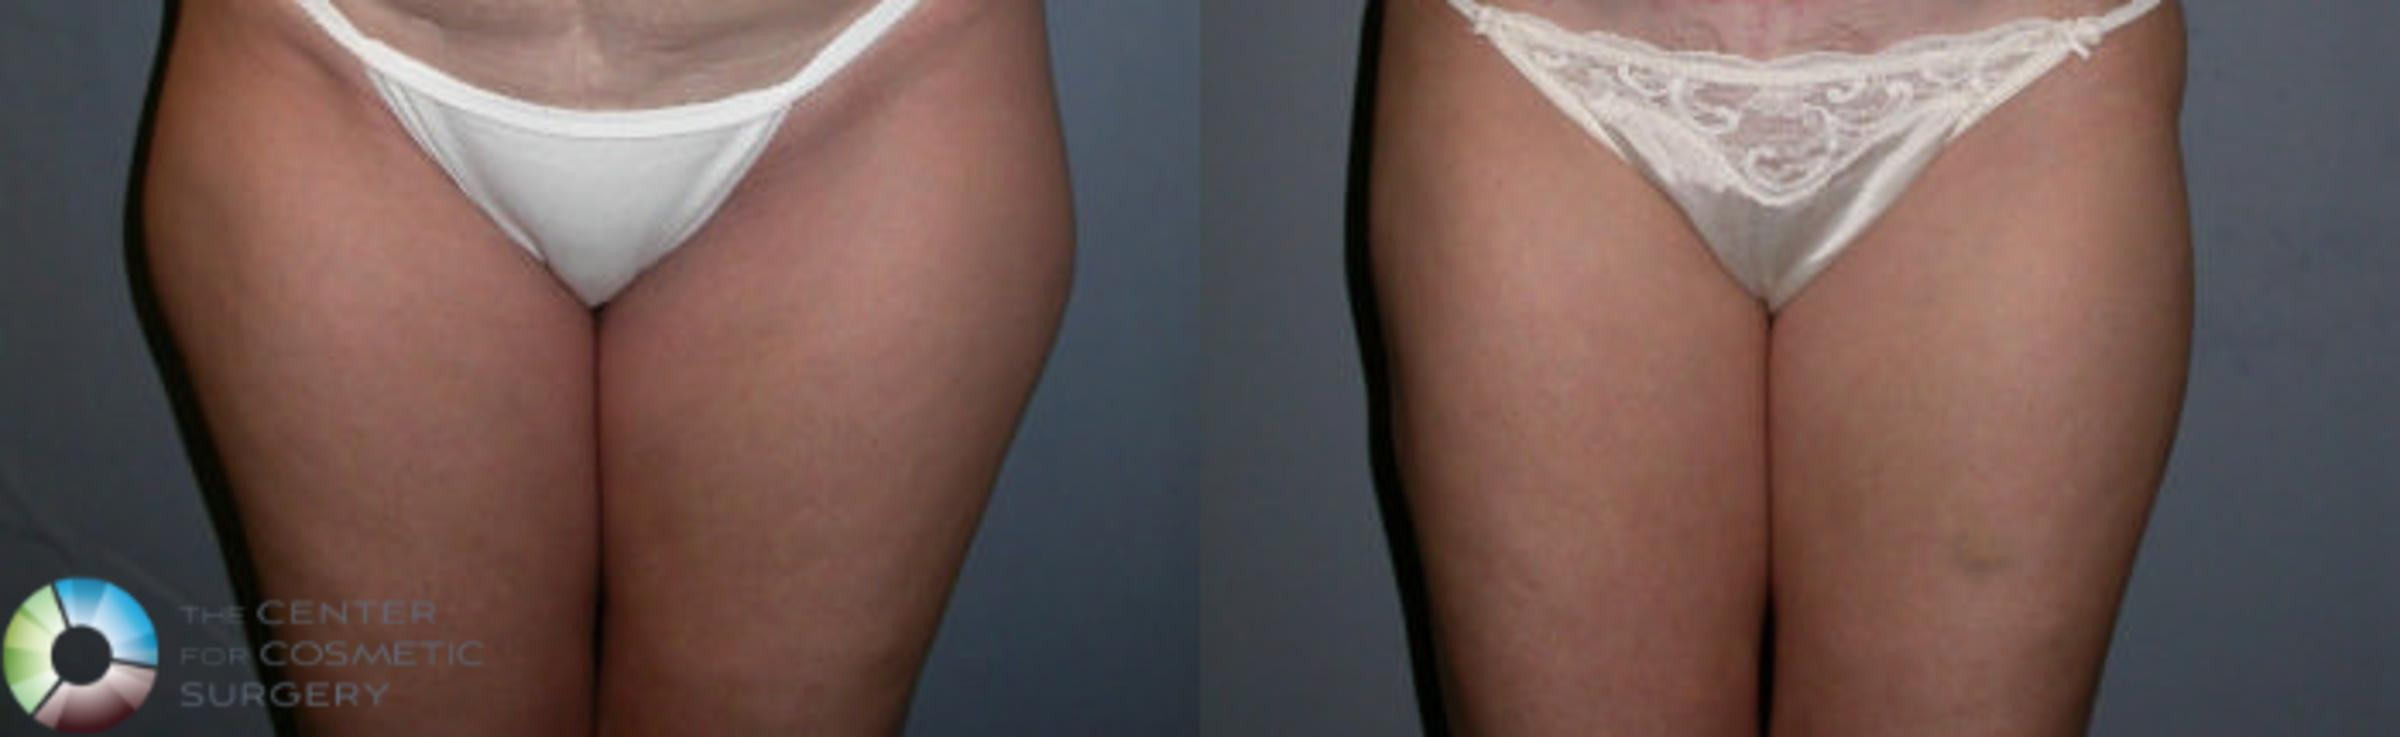 Liposuction Case 19 Before & After View #1 | Golden, CO | The Center for Cosmetic Surgery